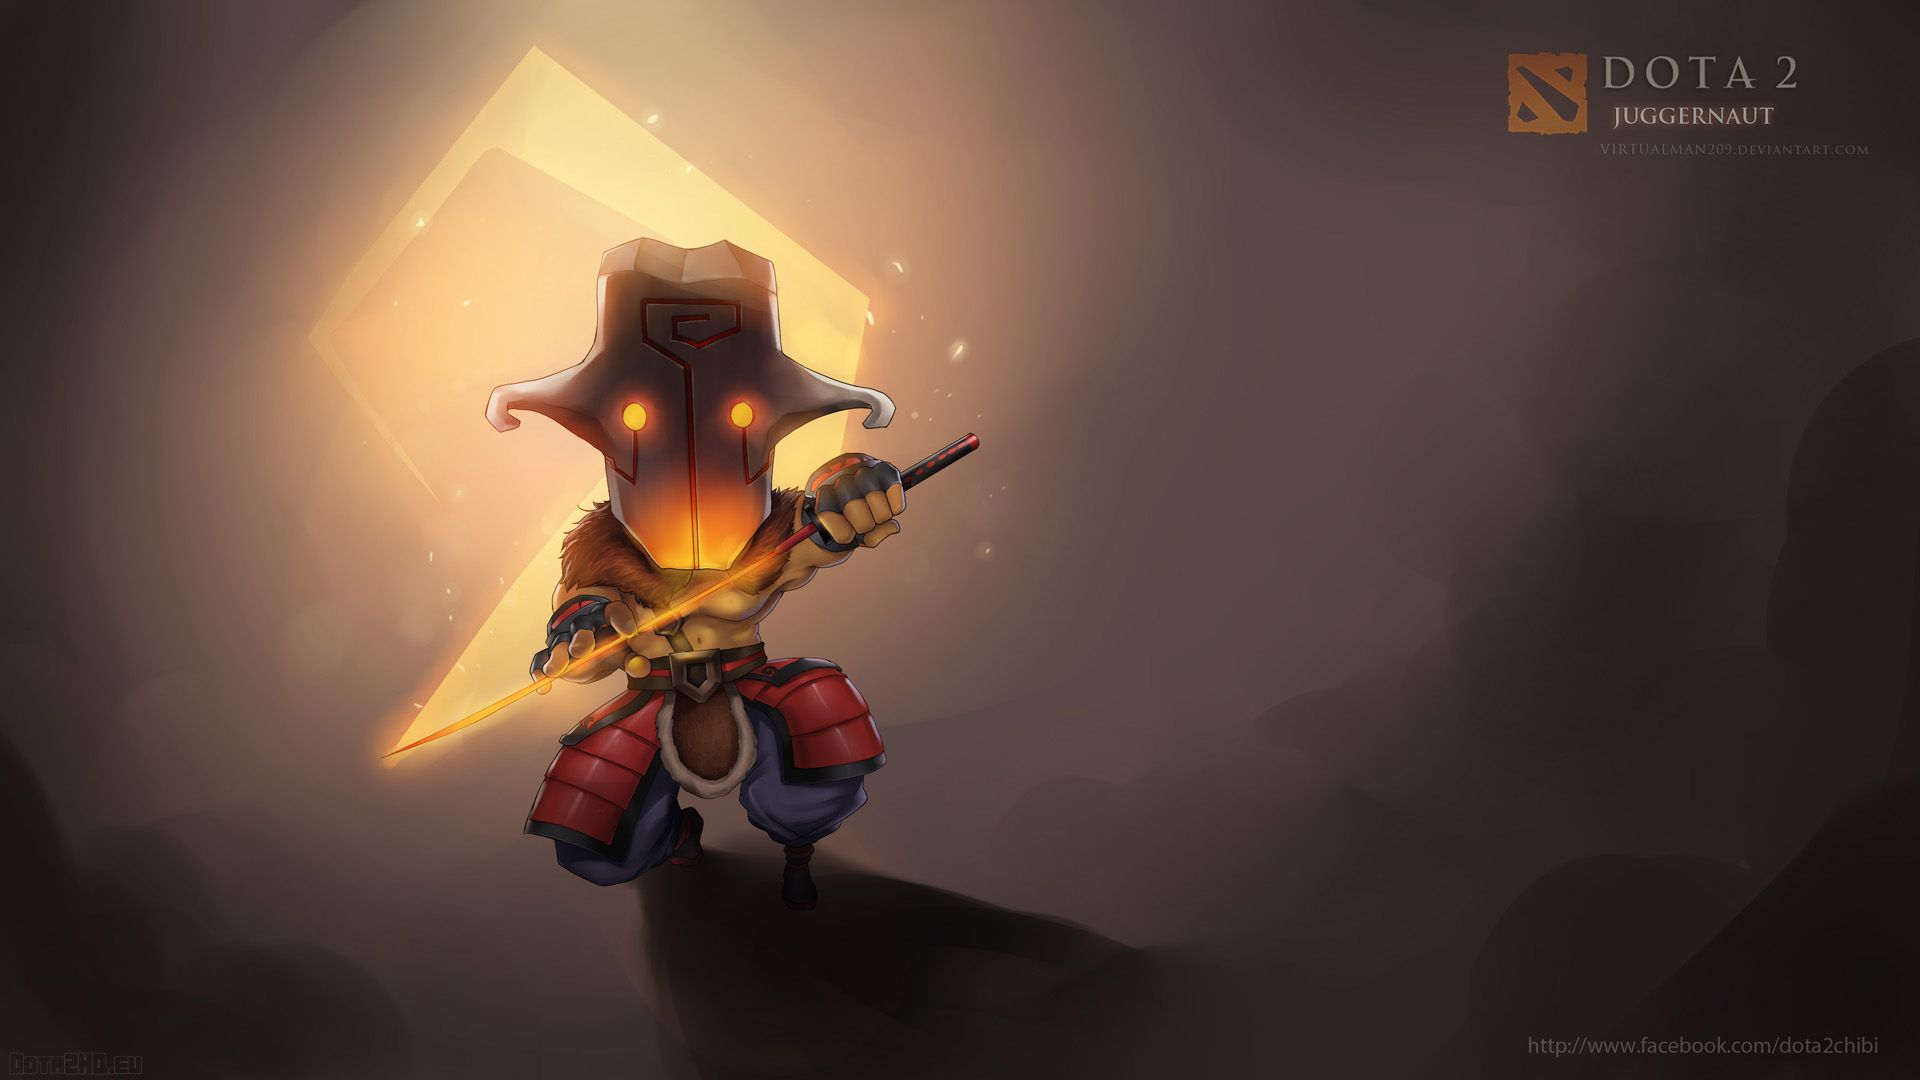 Dota 2 Juggernaut Wallpapers 1080p